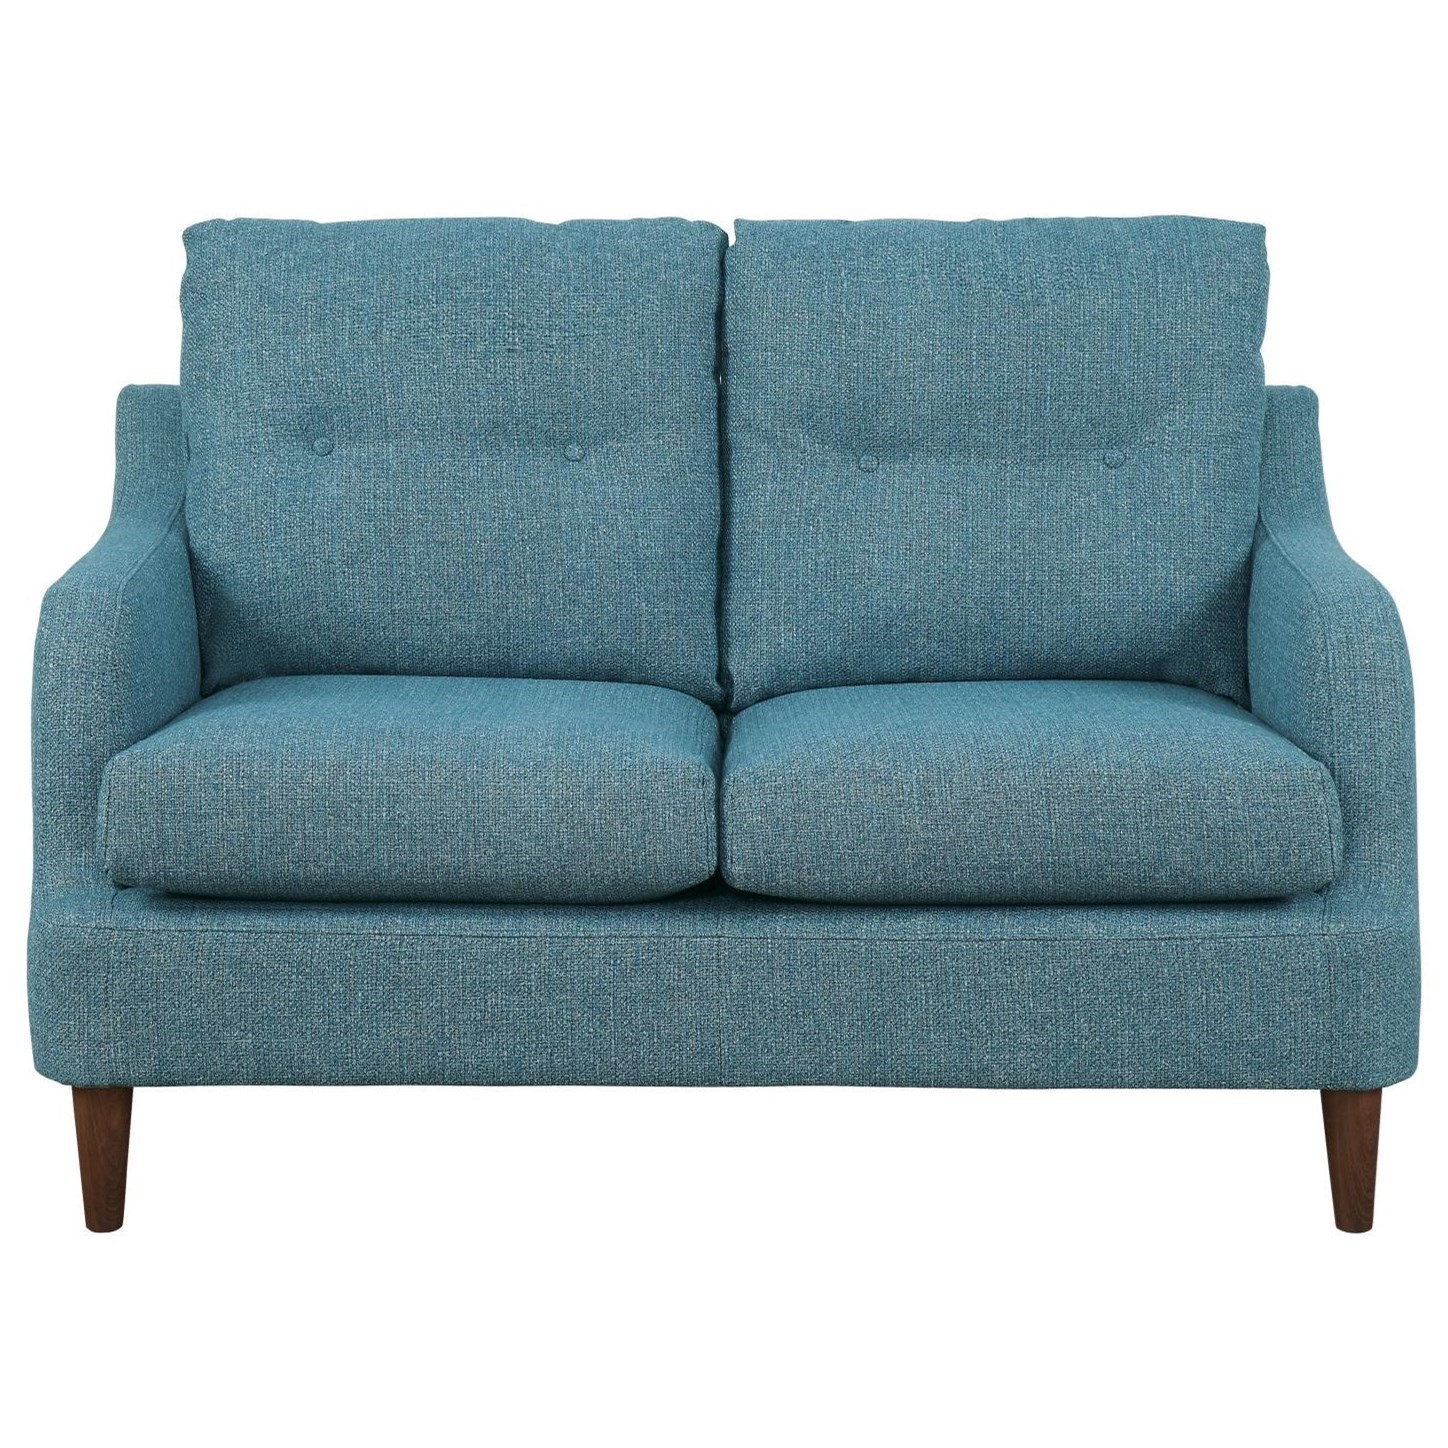 Cagle Love Seat by Homelegance at Lindy's Furniture Company